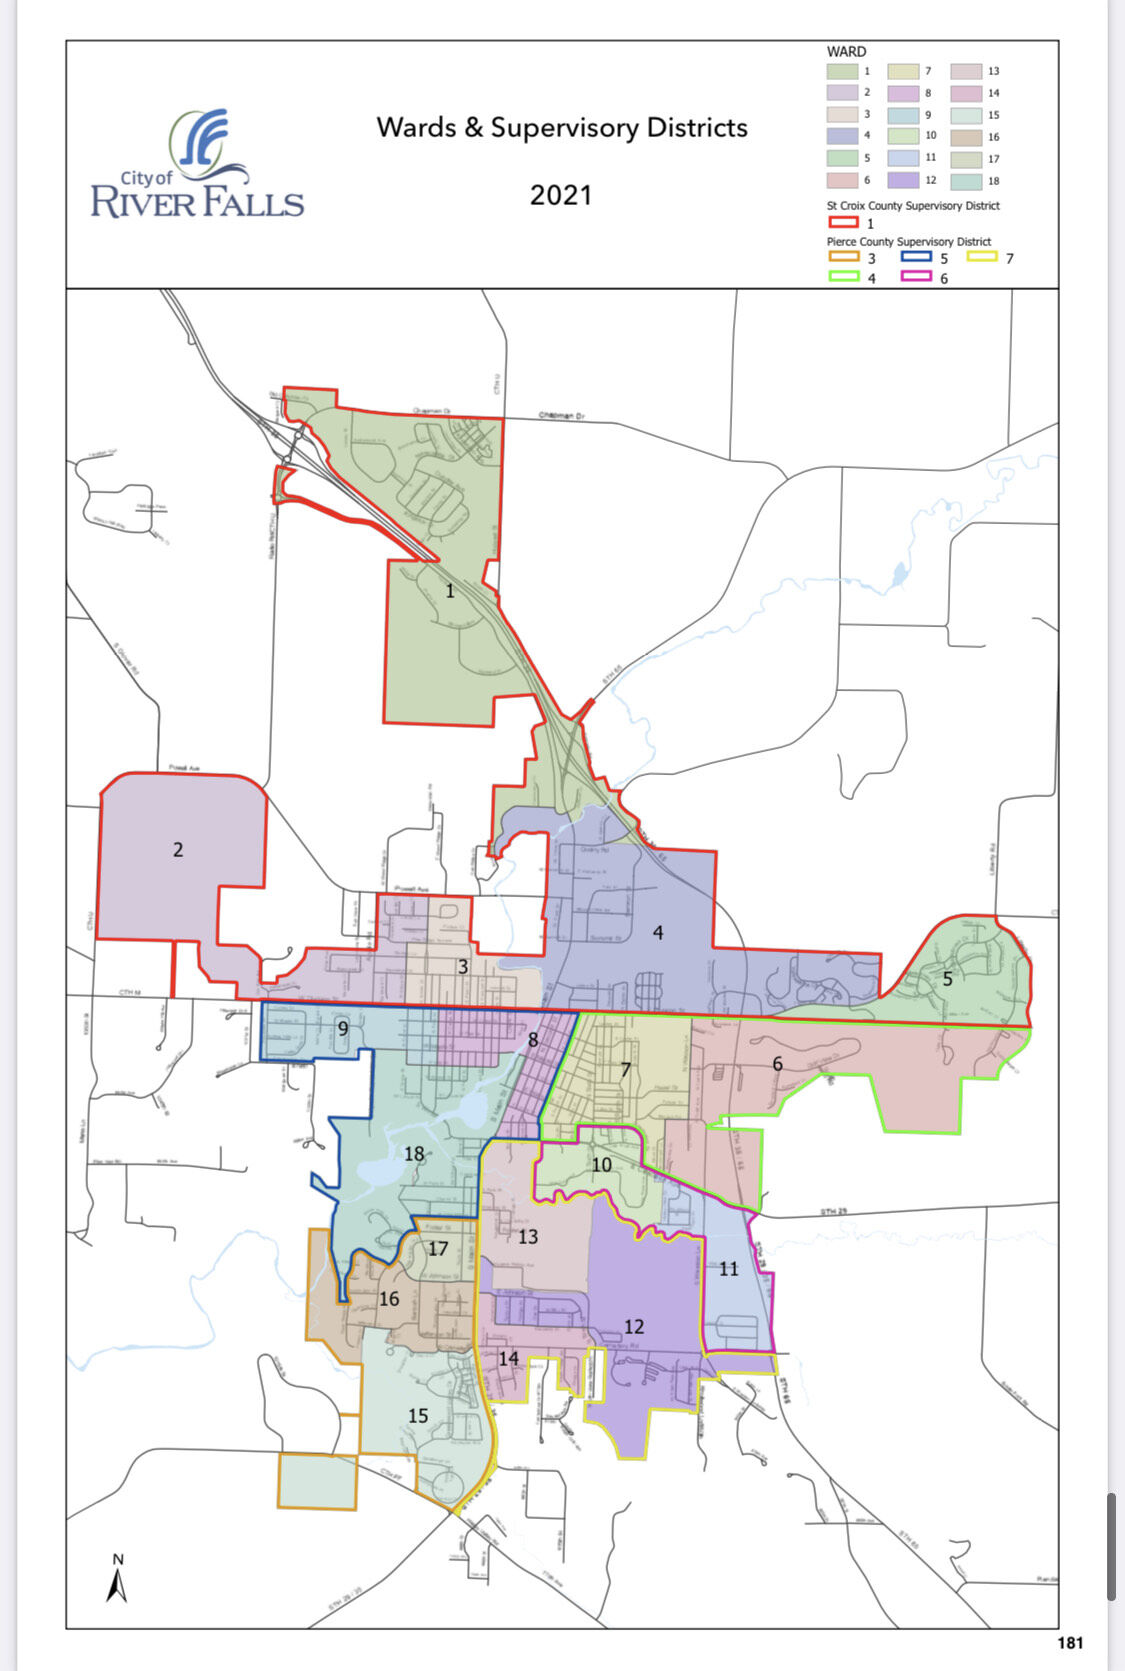 River Falls wards and supervisory districts 2021